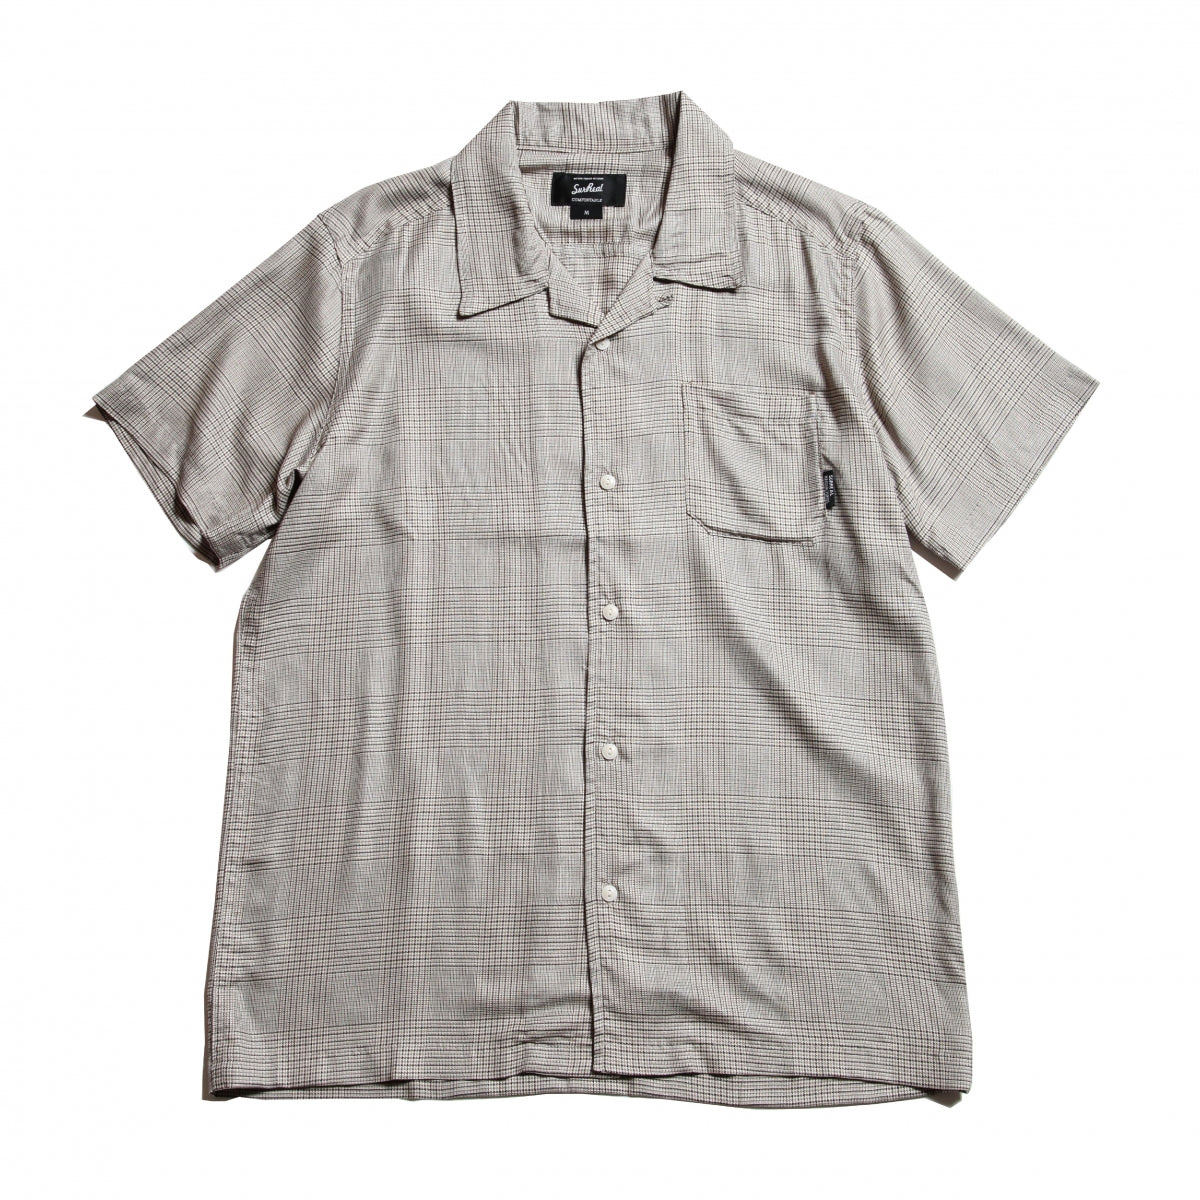 Stan_Dry Rayon Open Collar Shirt